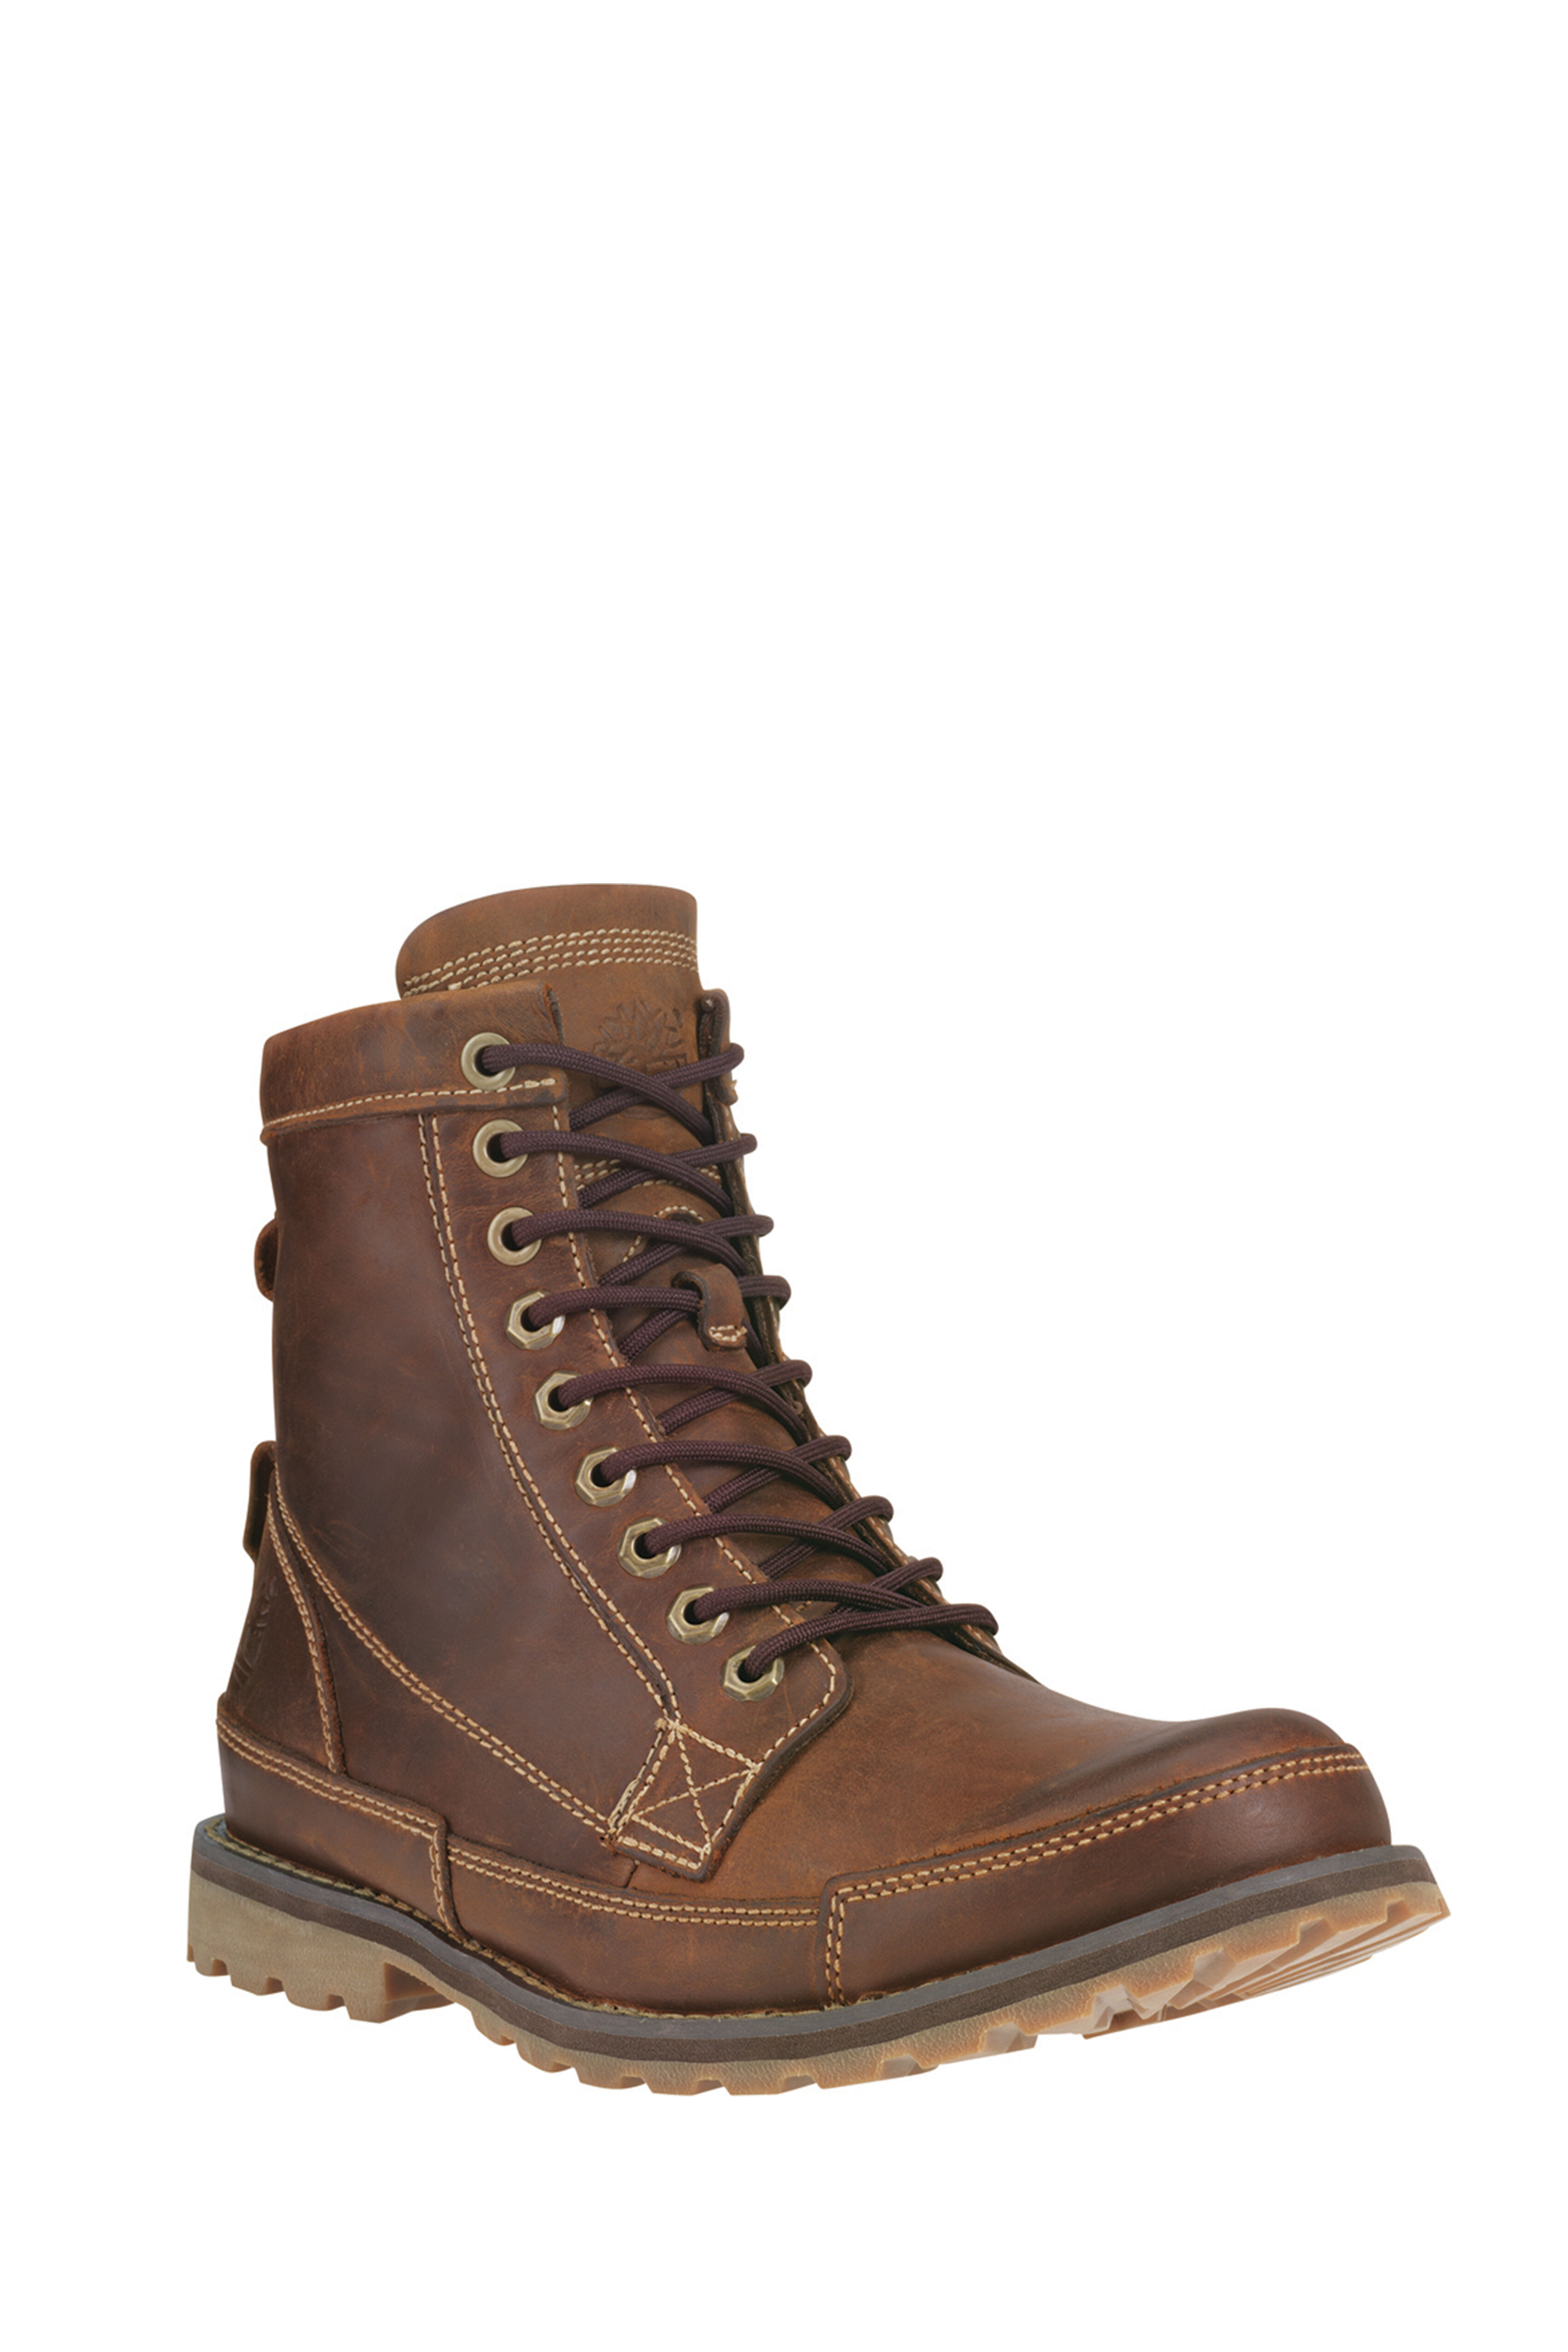 Timberland Original Leather 6 Inch Boot Men's Hiking